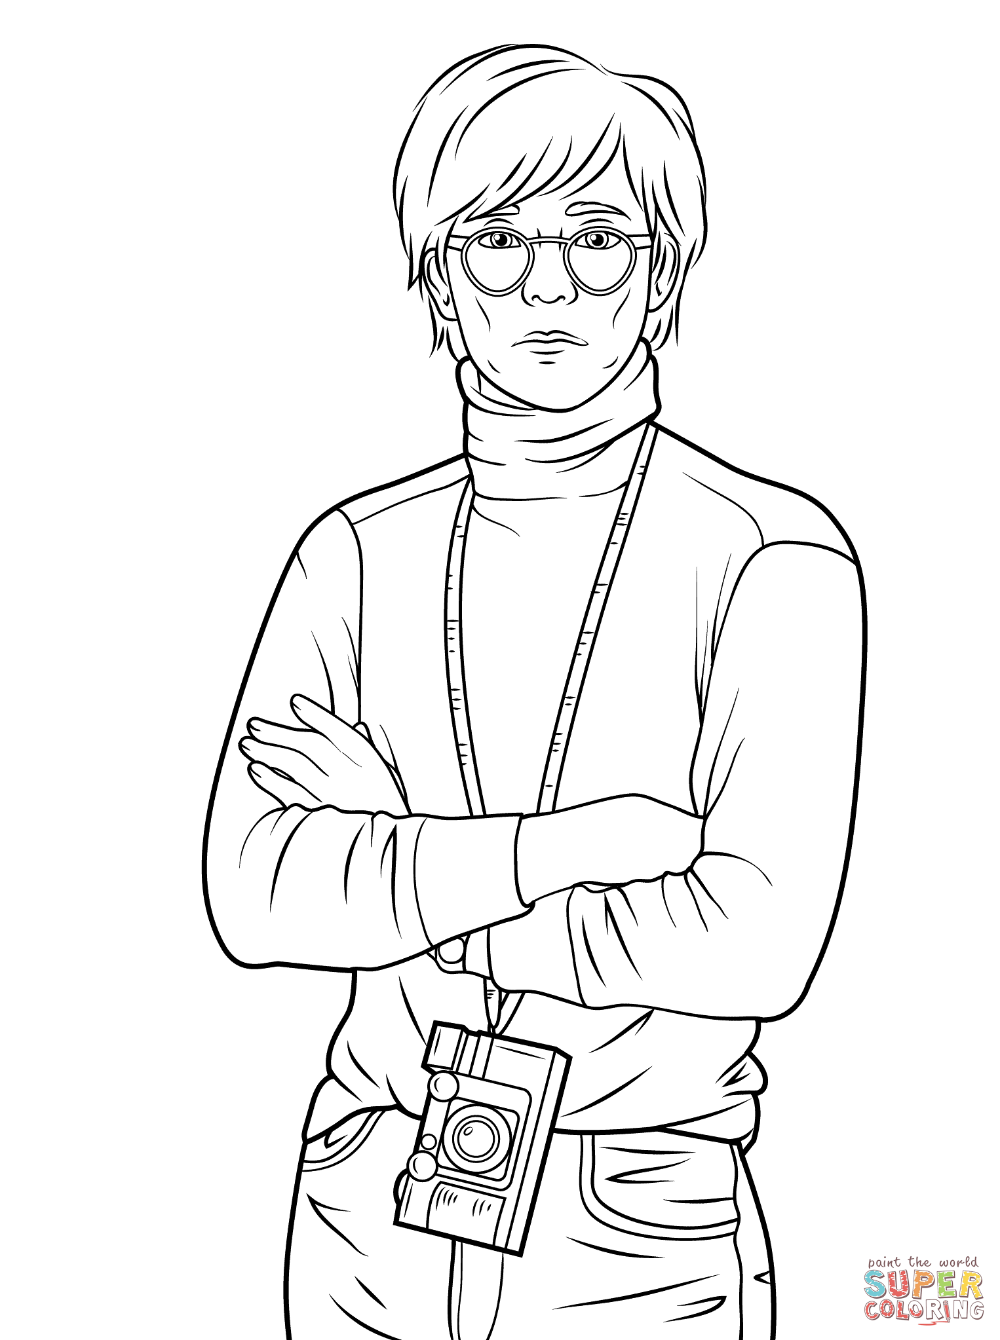 - Andy Warhol Coloring Page Free Printable Coloring Pages In 2020